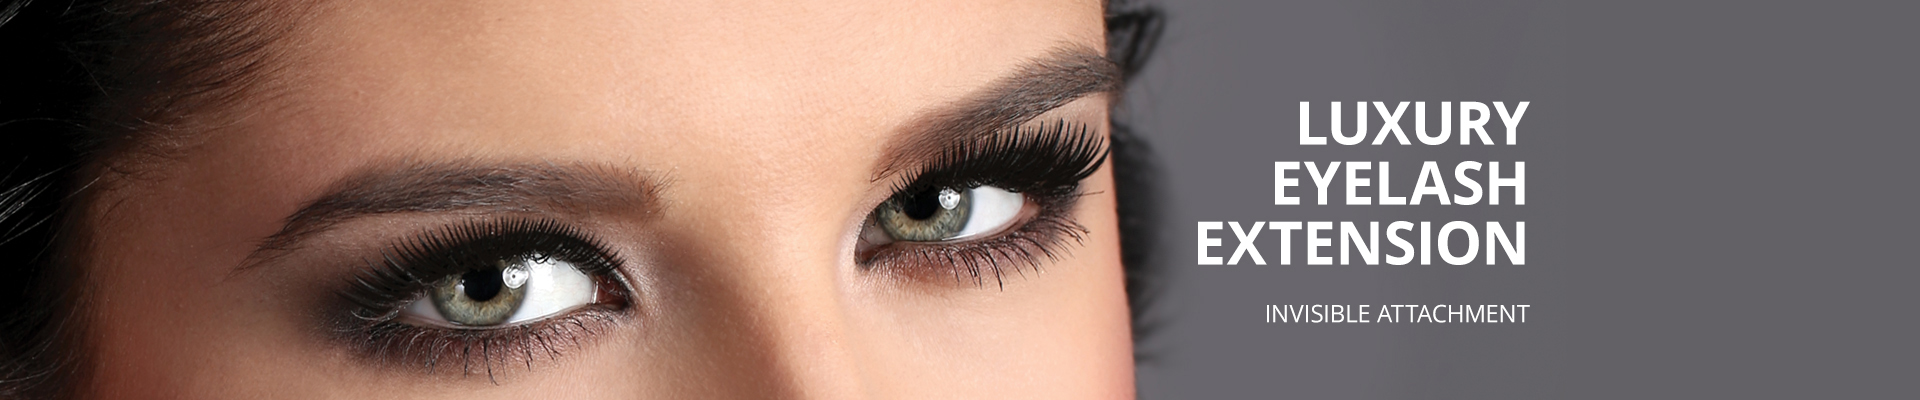 Luxury Eyelash Extension - Invisible attachment